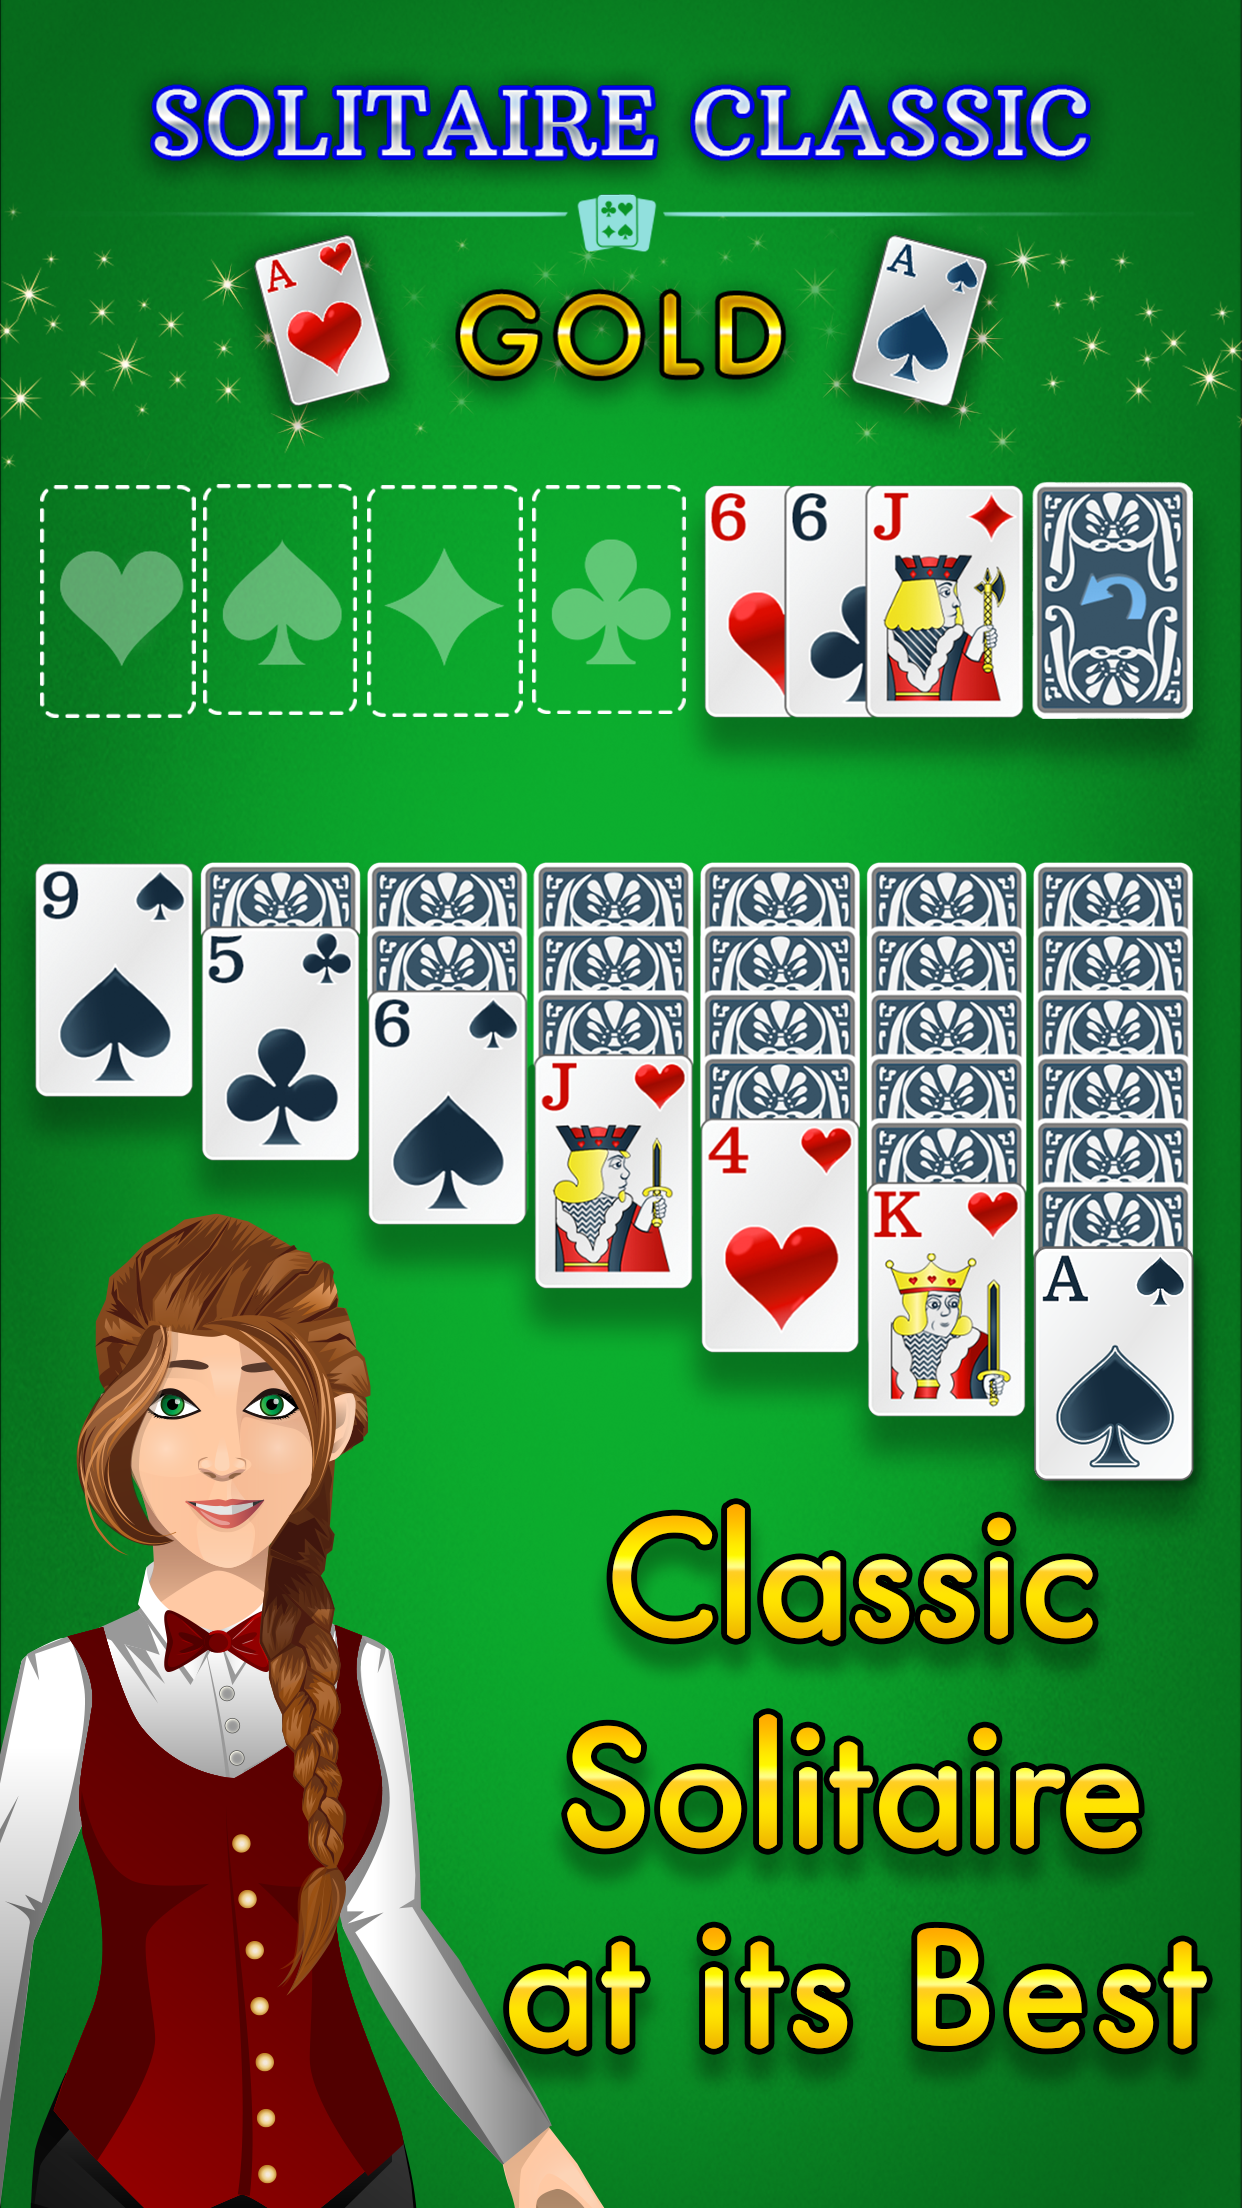 Enjoy the Classic Solitaire Game! Take a moment of